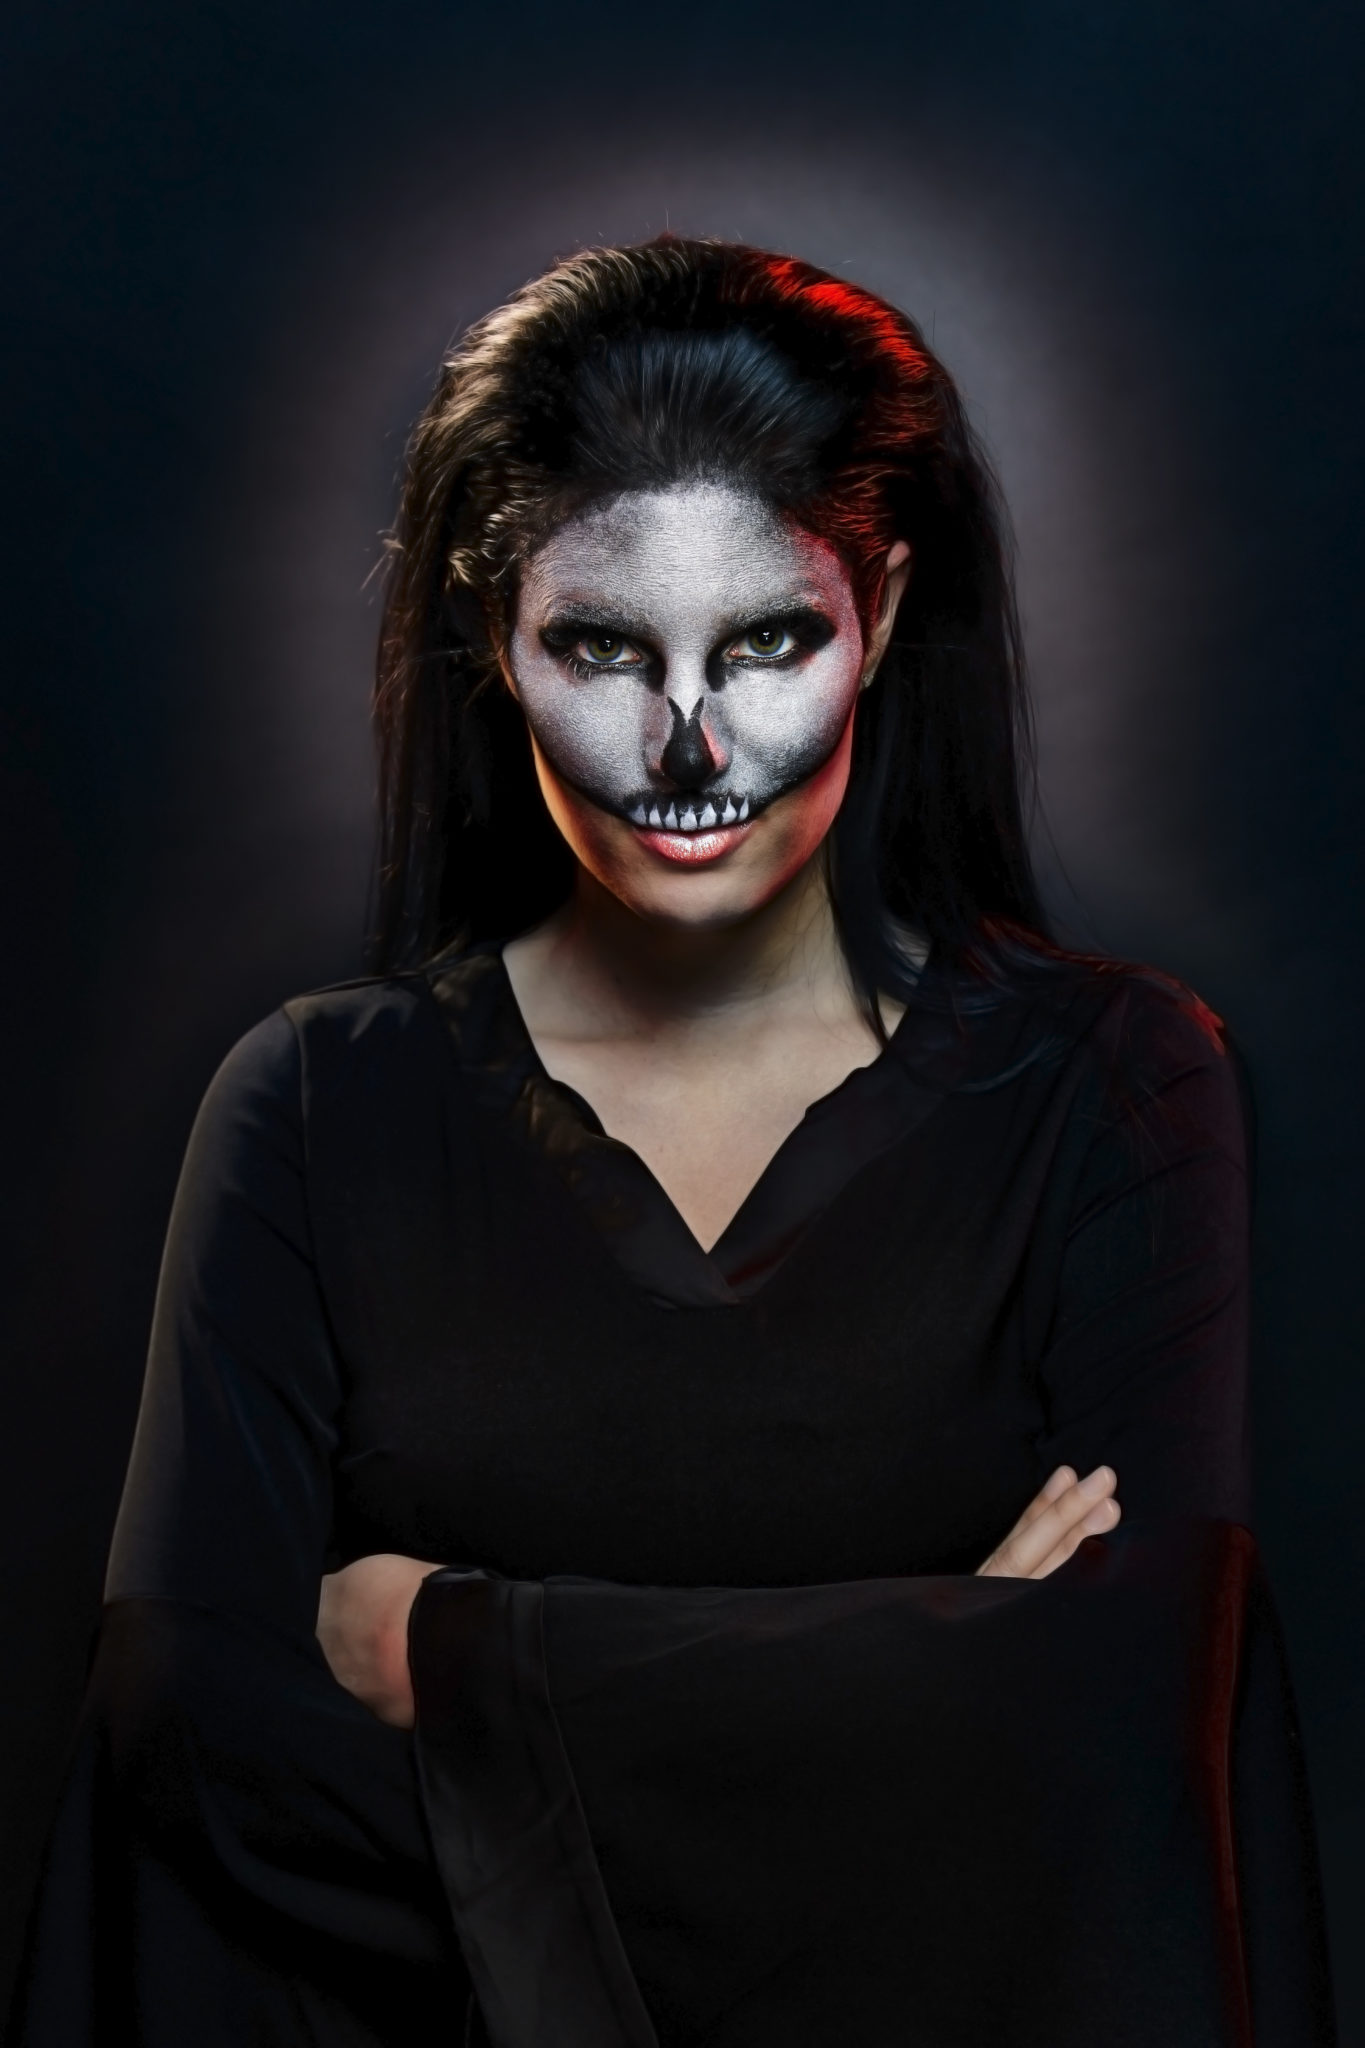 Halloween Skull Makeup | halloween makeup ideas | halloween costume ideas | how to do makeup for halloween | halloween inspired makeup ideas | makeup tips for halloween || Dressed to Kill